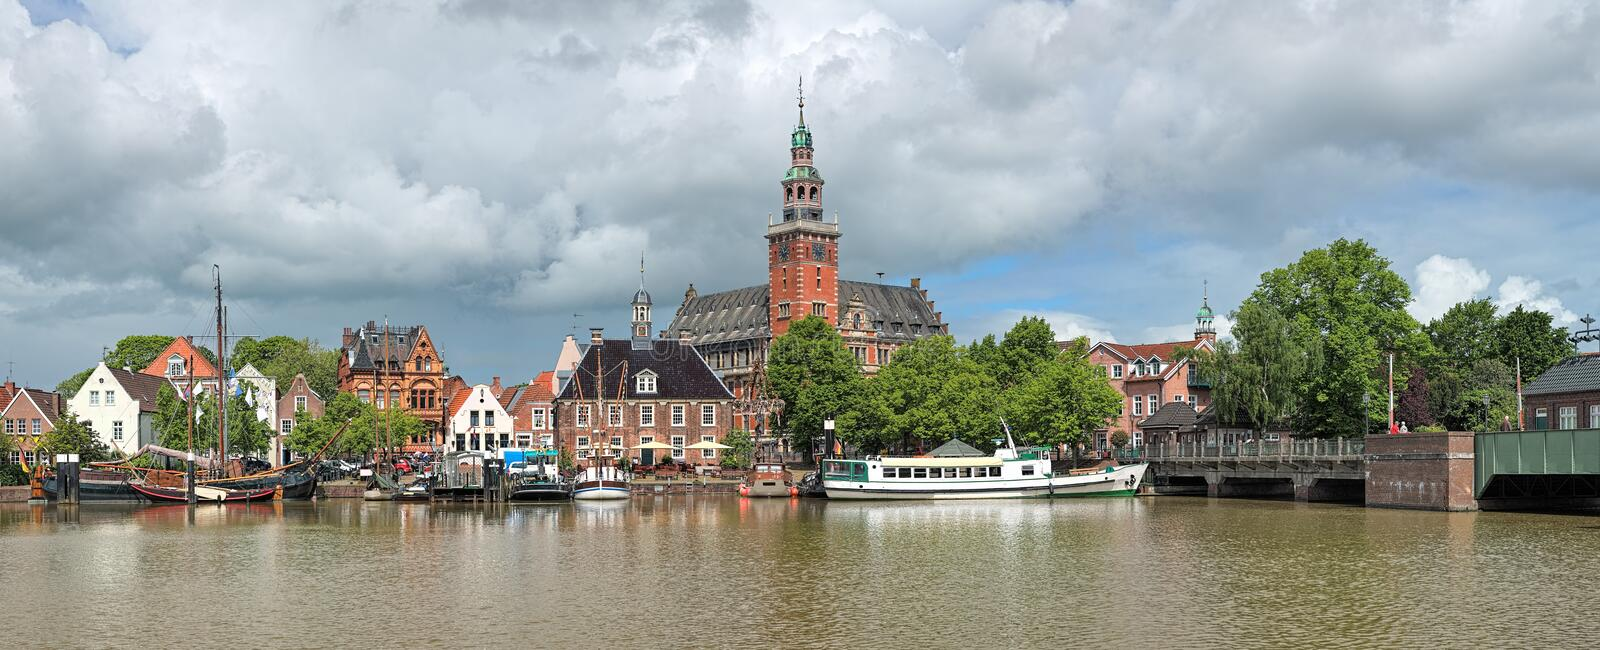 Panoramic view from Leda river on City Hall and Old Weigh House in Leer, Germany. Leer, Germany. Panoramic view from Leda river on City Hall in Dutch Renaissance royalty free stock image